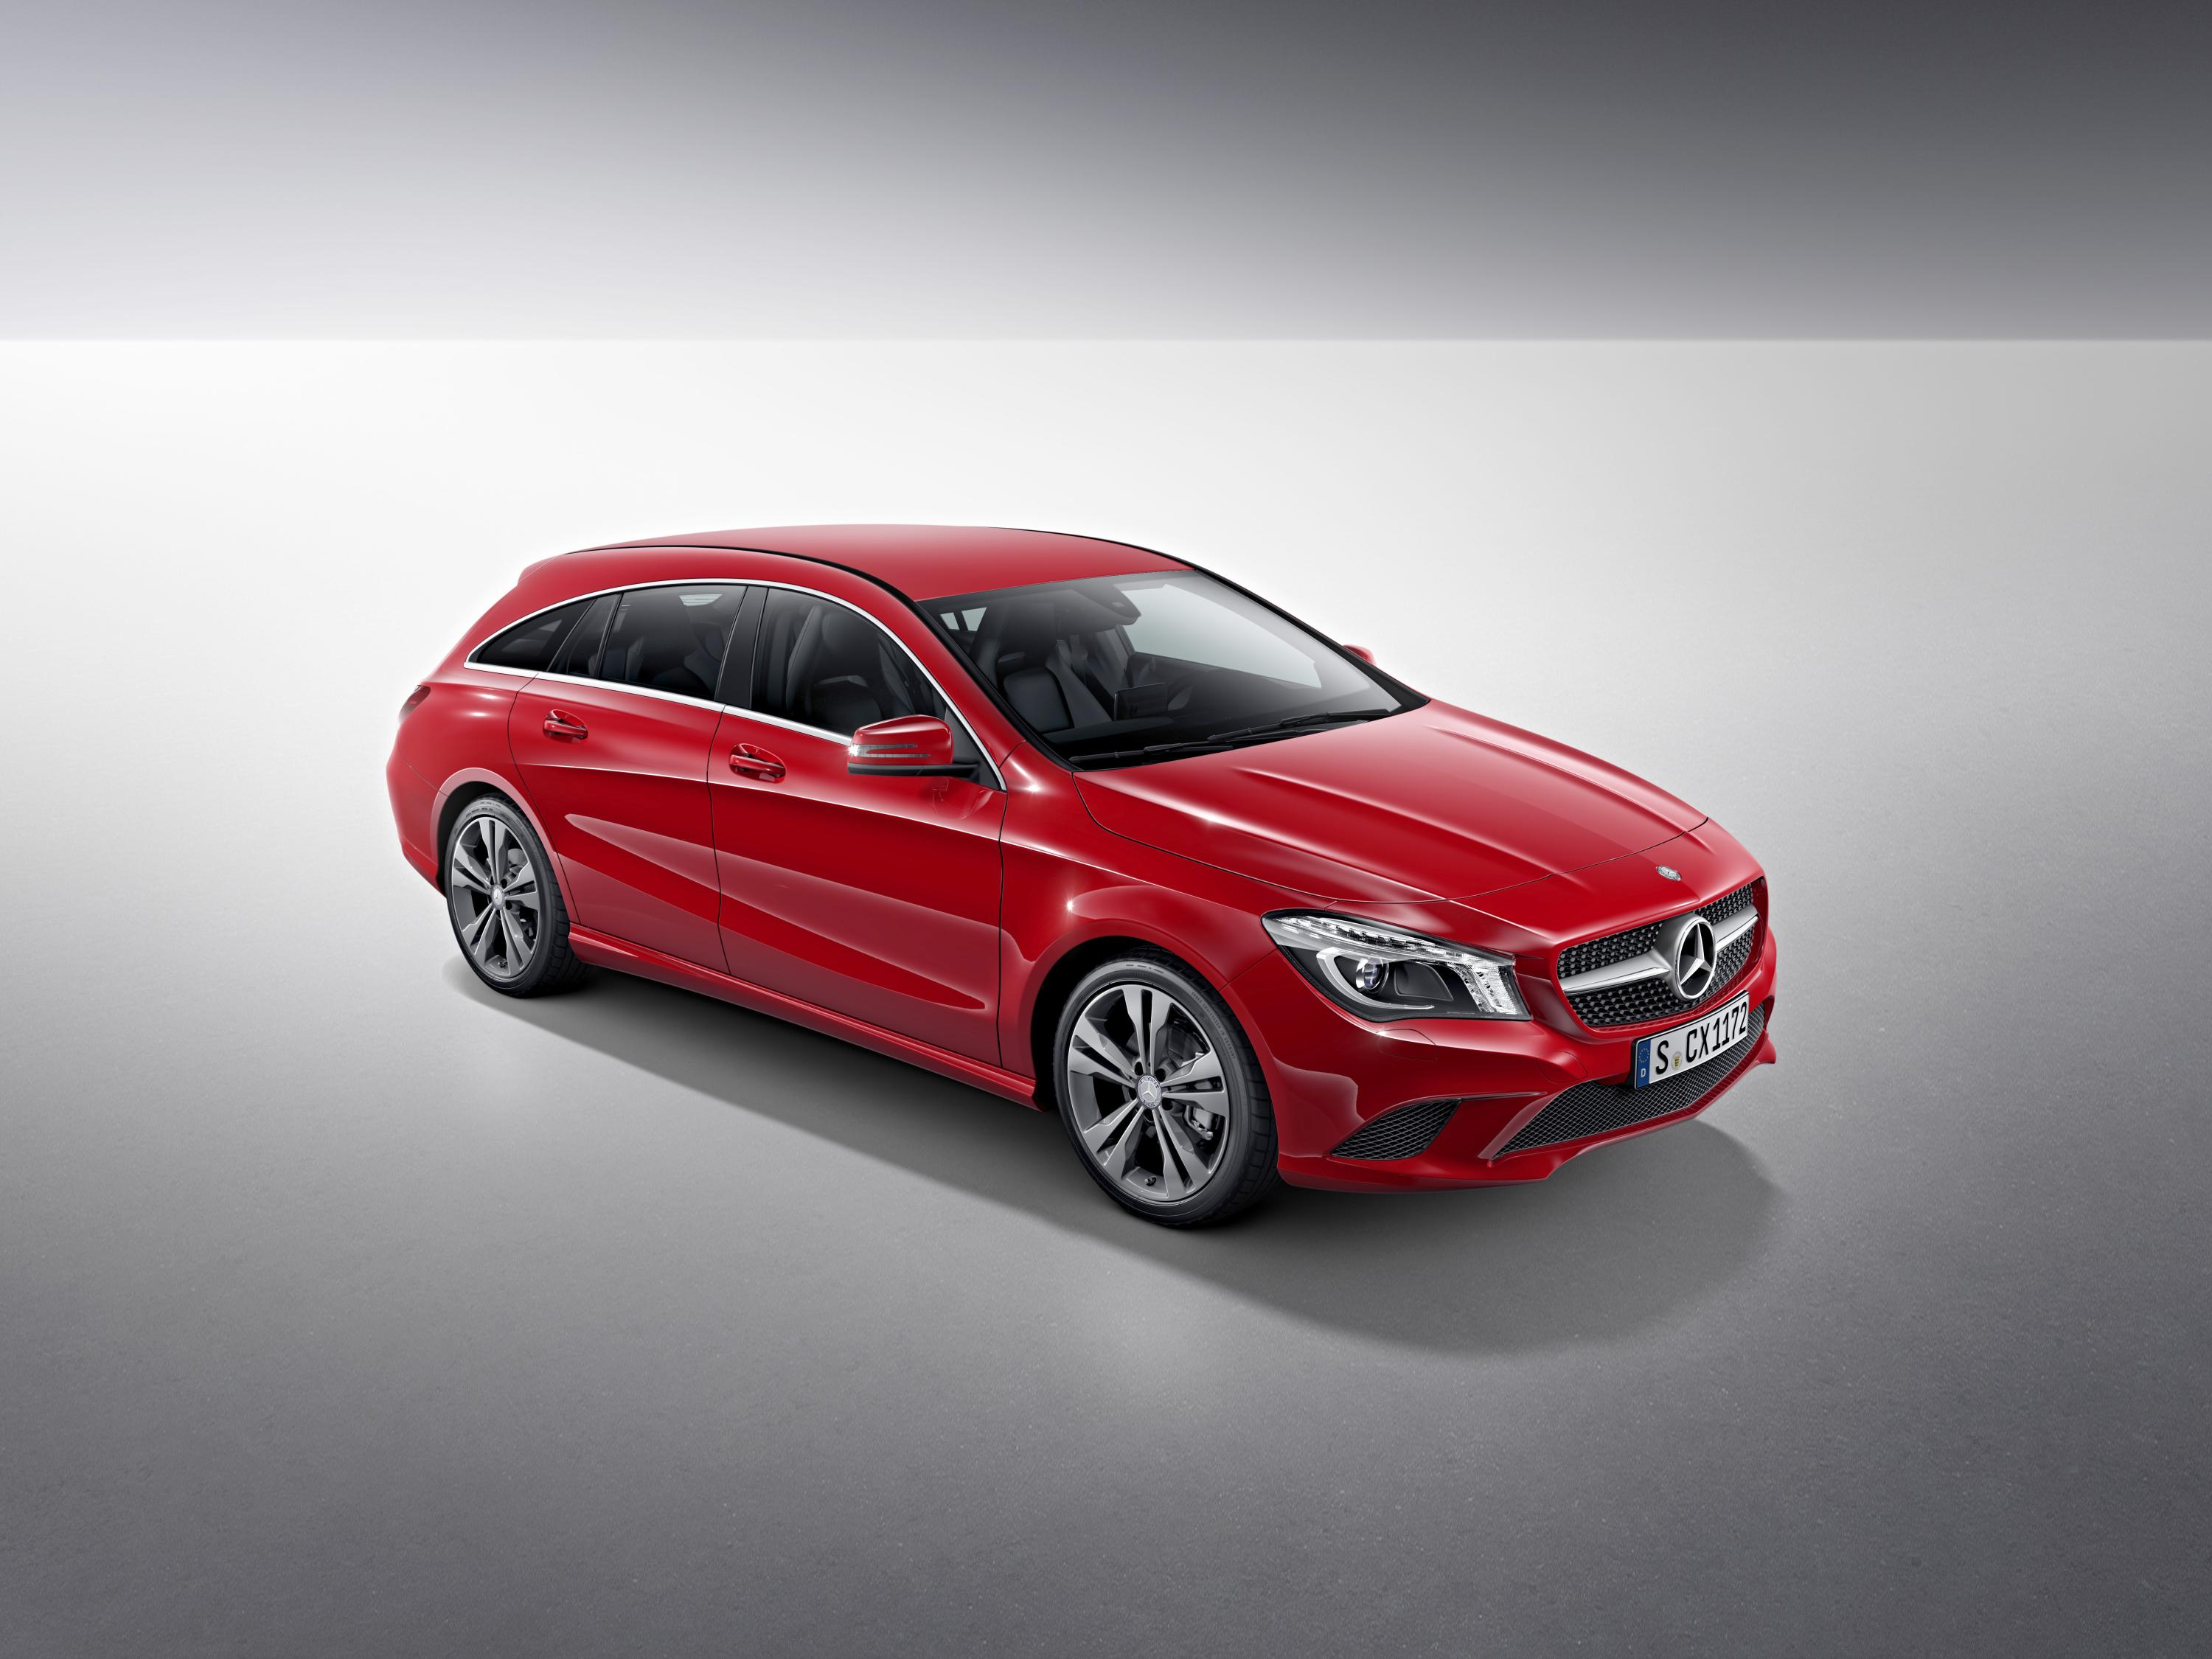 2015 mercedes cla shooting brake prices announced 45 amg for Mercedes benz cla 2015 price